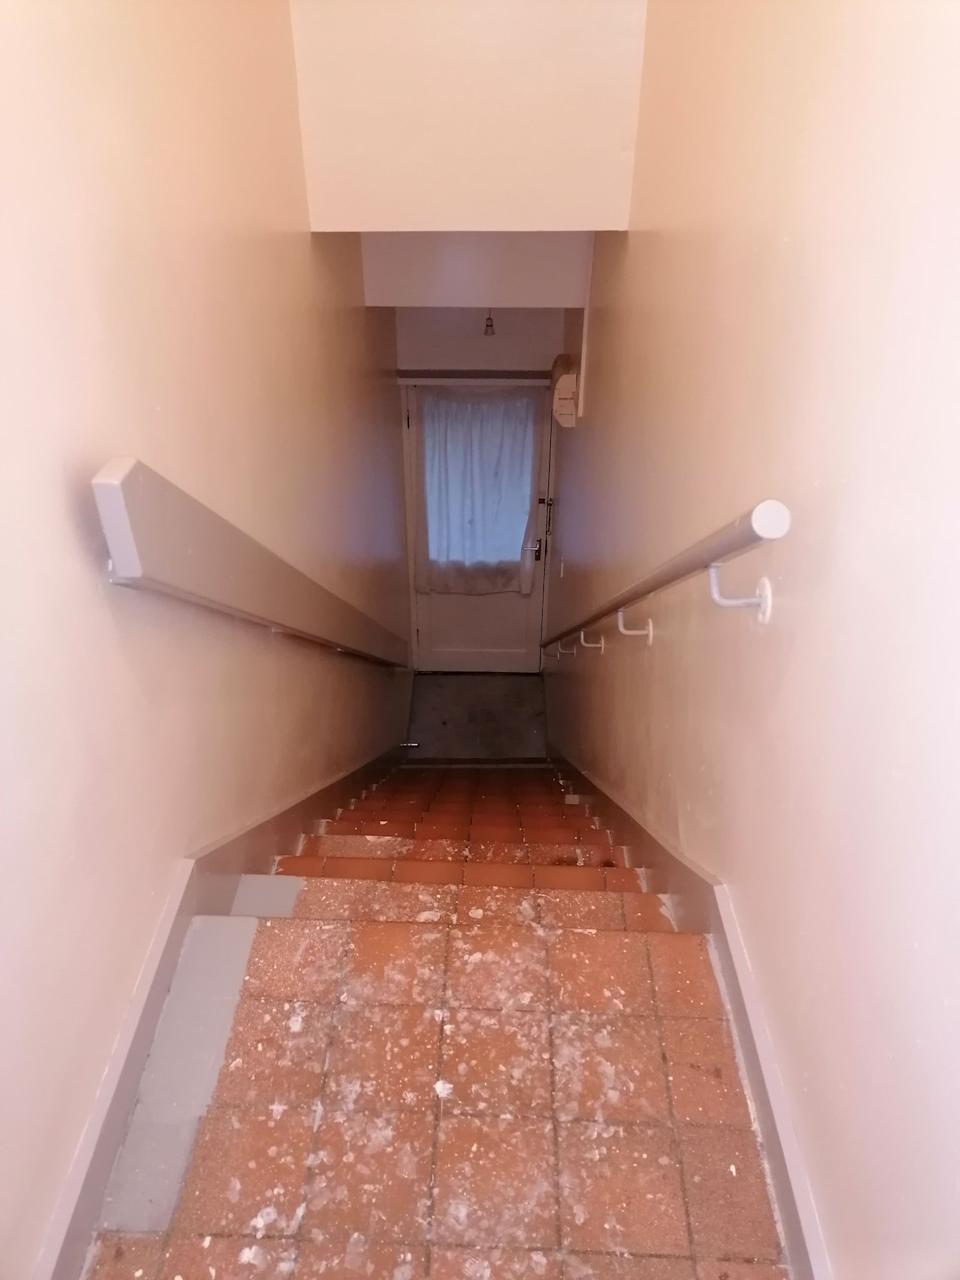 The stairway before was pretty drab. (Supplied latestdeals.co.uk)